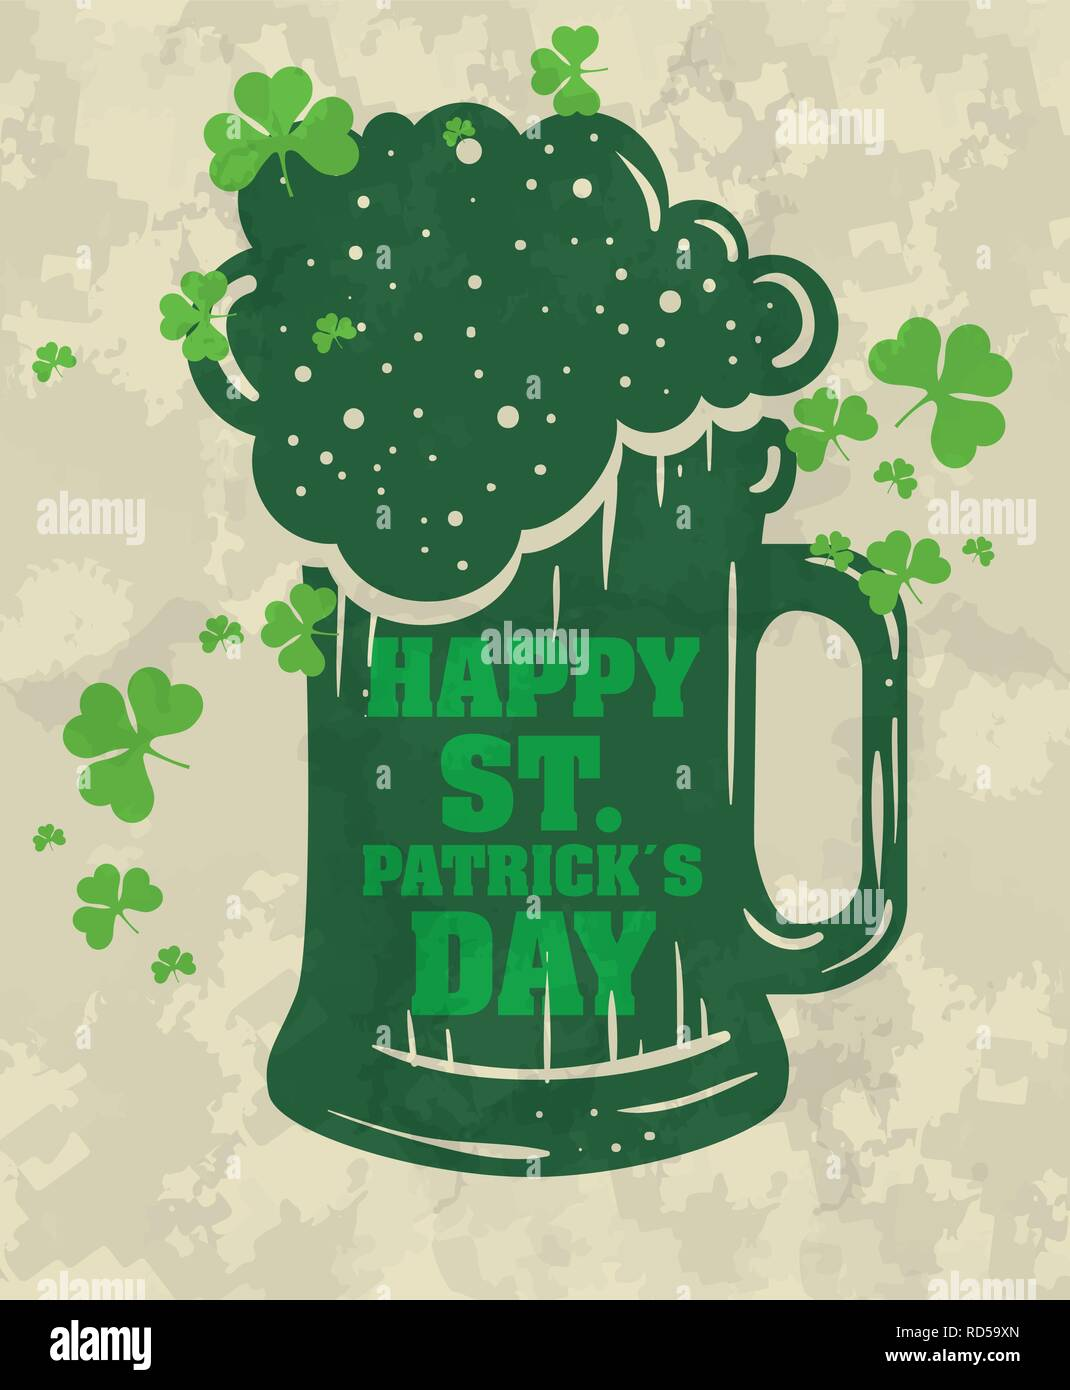 st partick celebration with beer glass and clovers - Stock Image